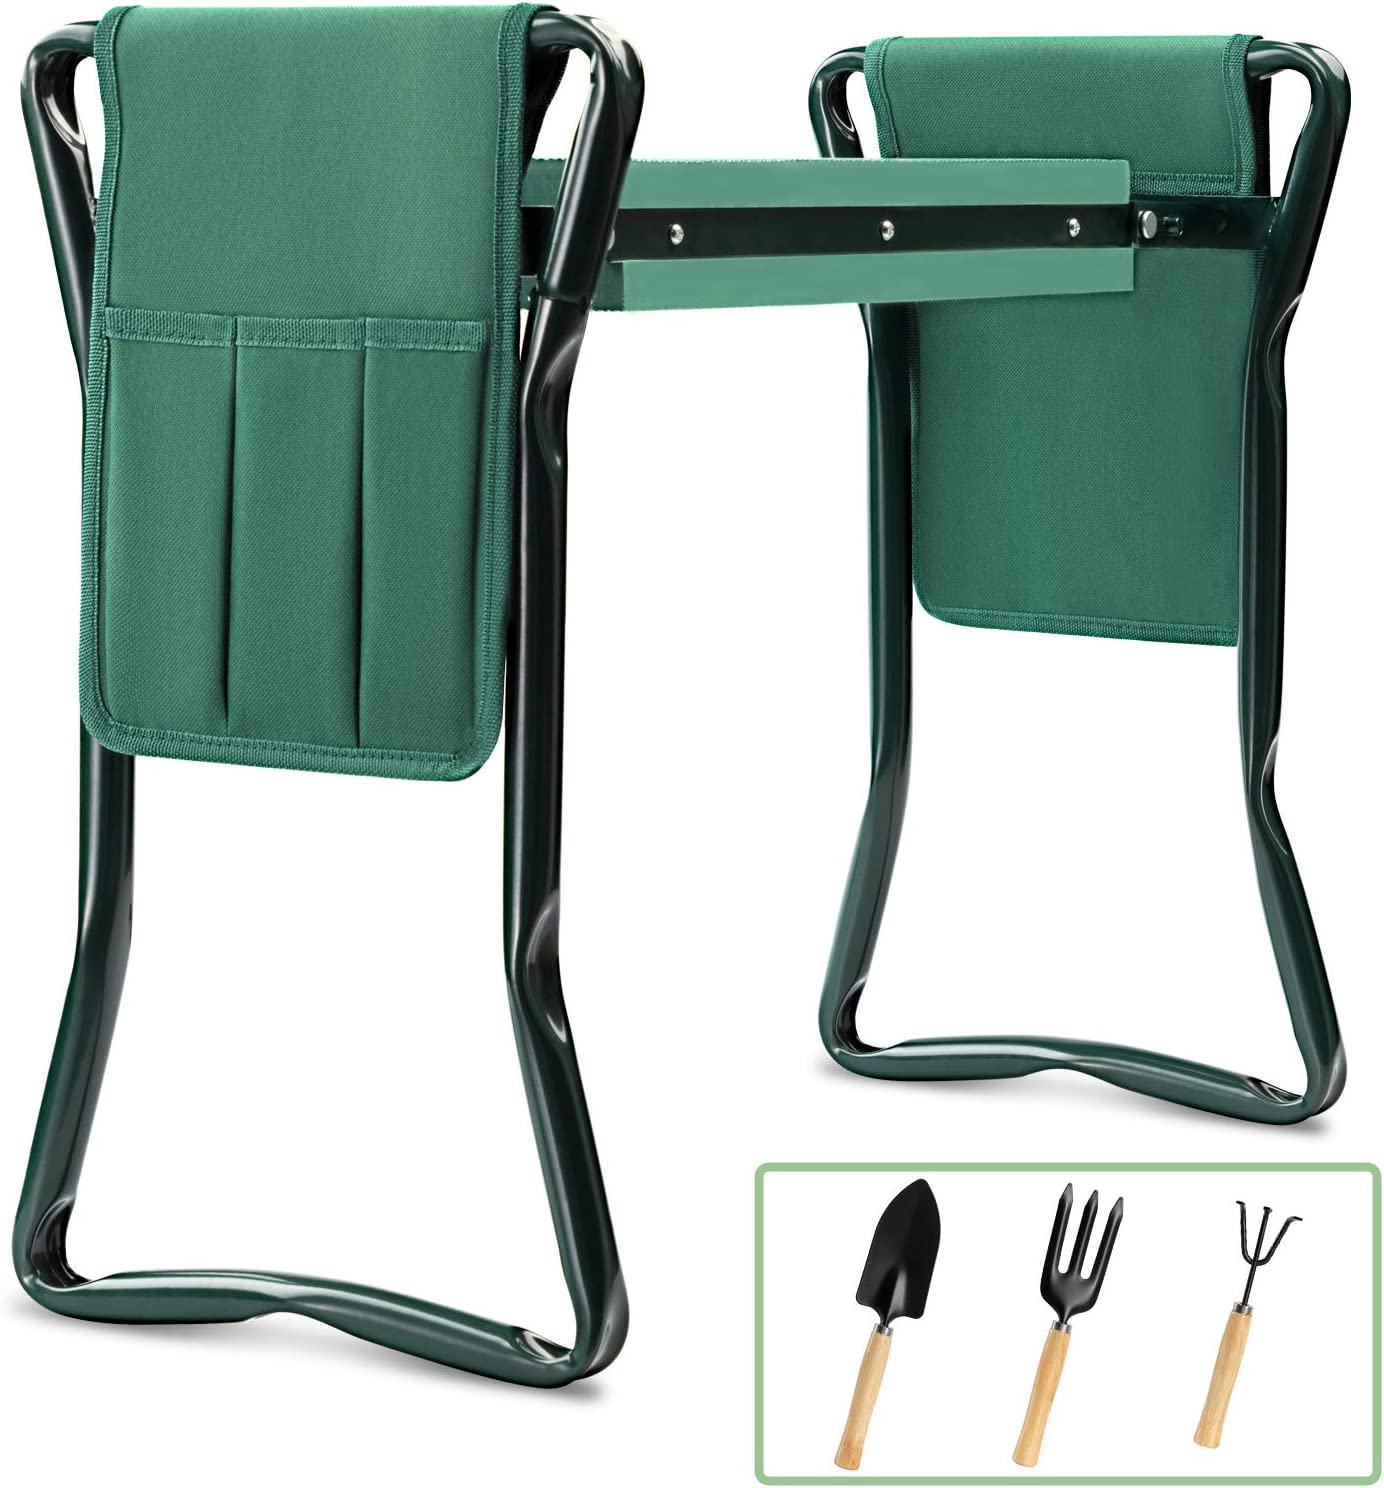 Garden Kneeler and Seat Bench Stools KITADIN Foldable Stool with Tool Bag Pouch EVA Foam Pad Outdoor Portable Kneeler for Gardening (5.9, 1)